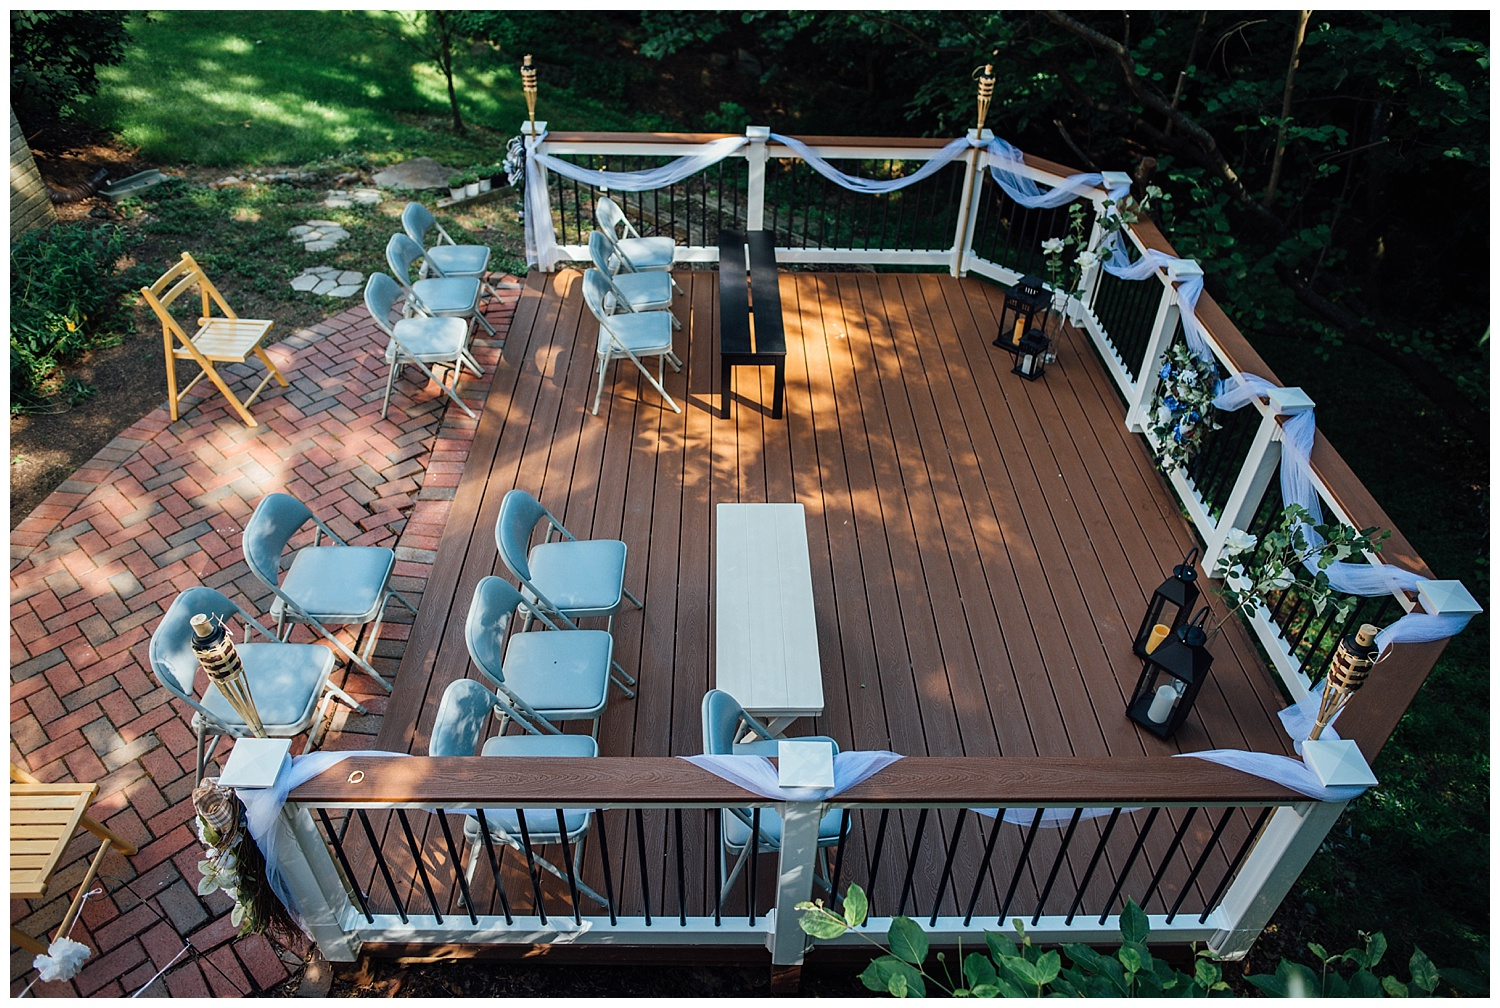 wedding-on-patio-herndon-va.jpg